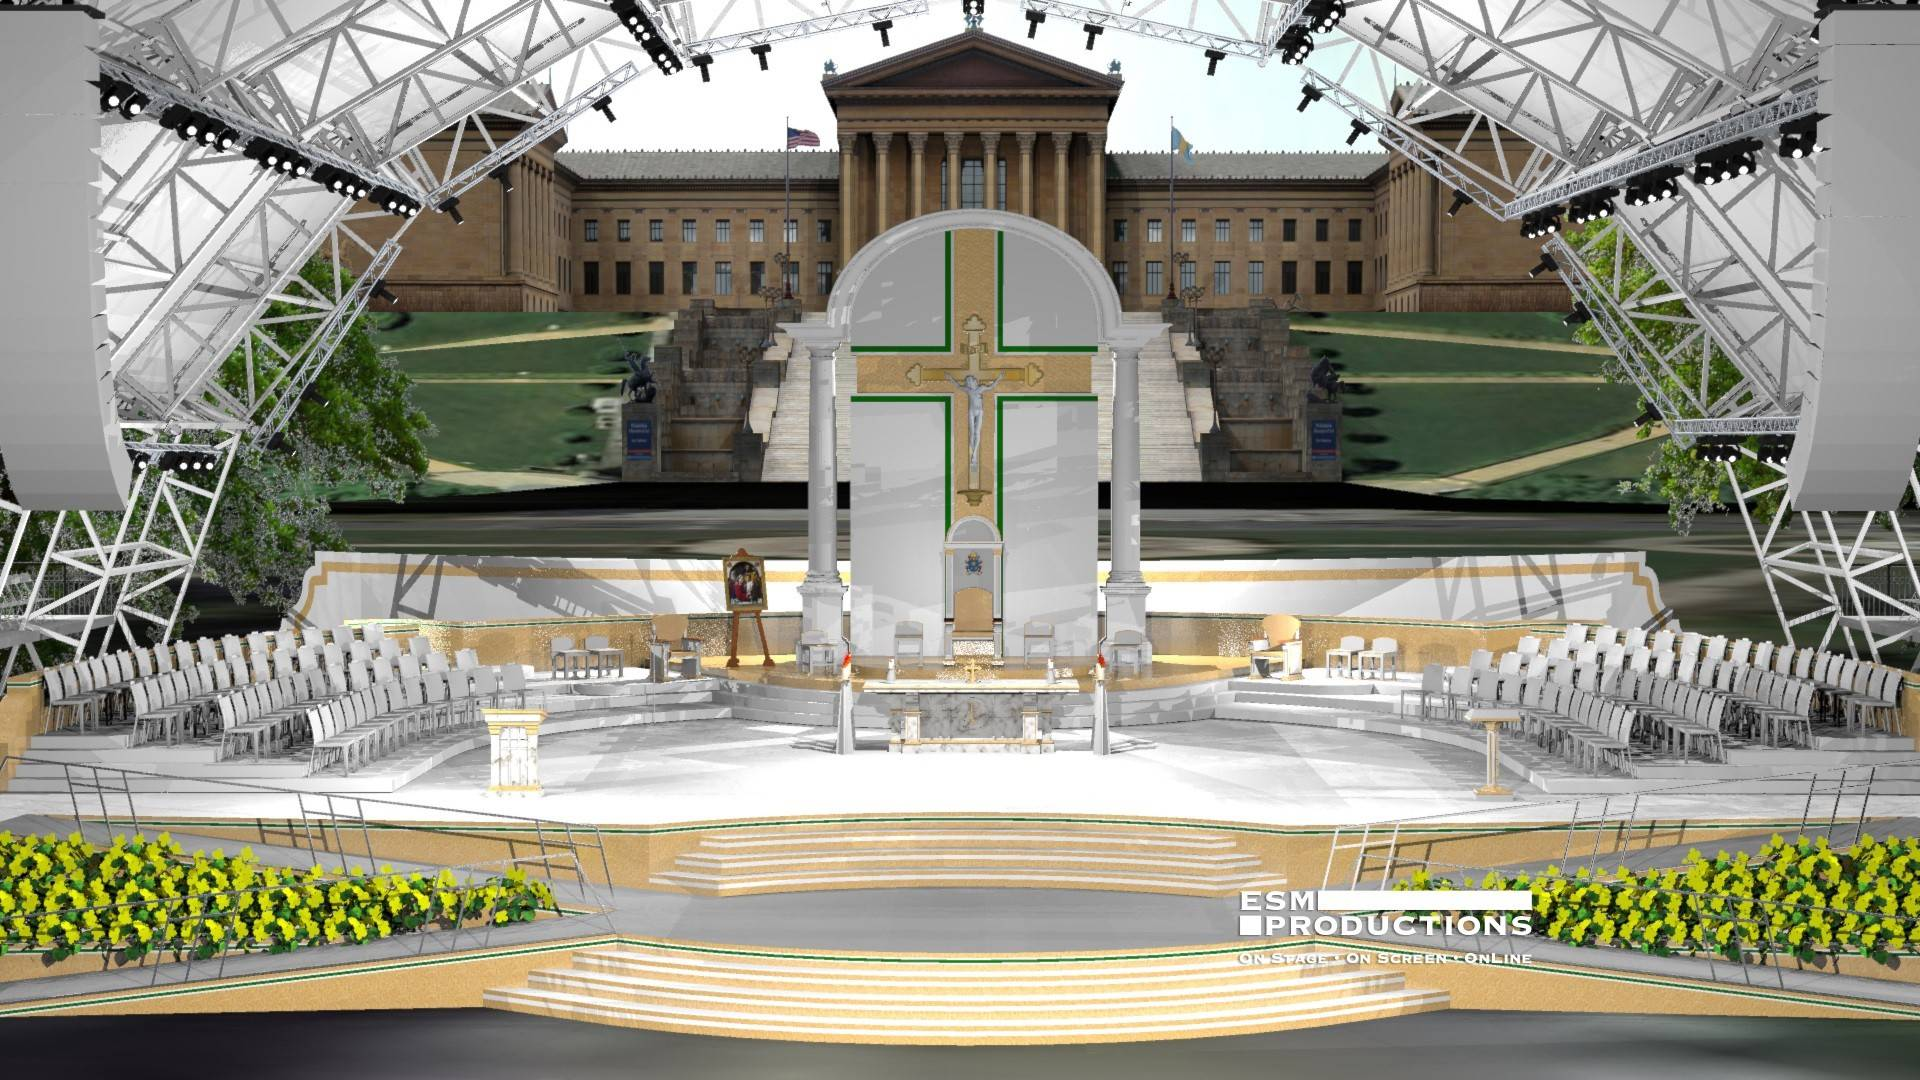 Pope Francis will preside over a sea of crowds from this sanctuary in front of the Philadelphia Museum of Art. It was inspired by a design by Glen Ellyn native Jim Lenahan.